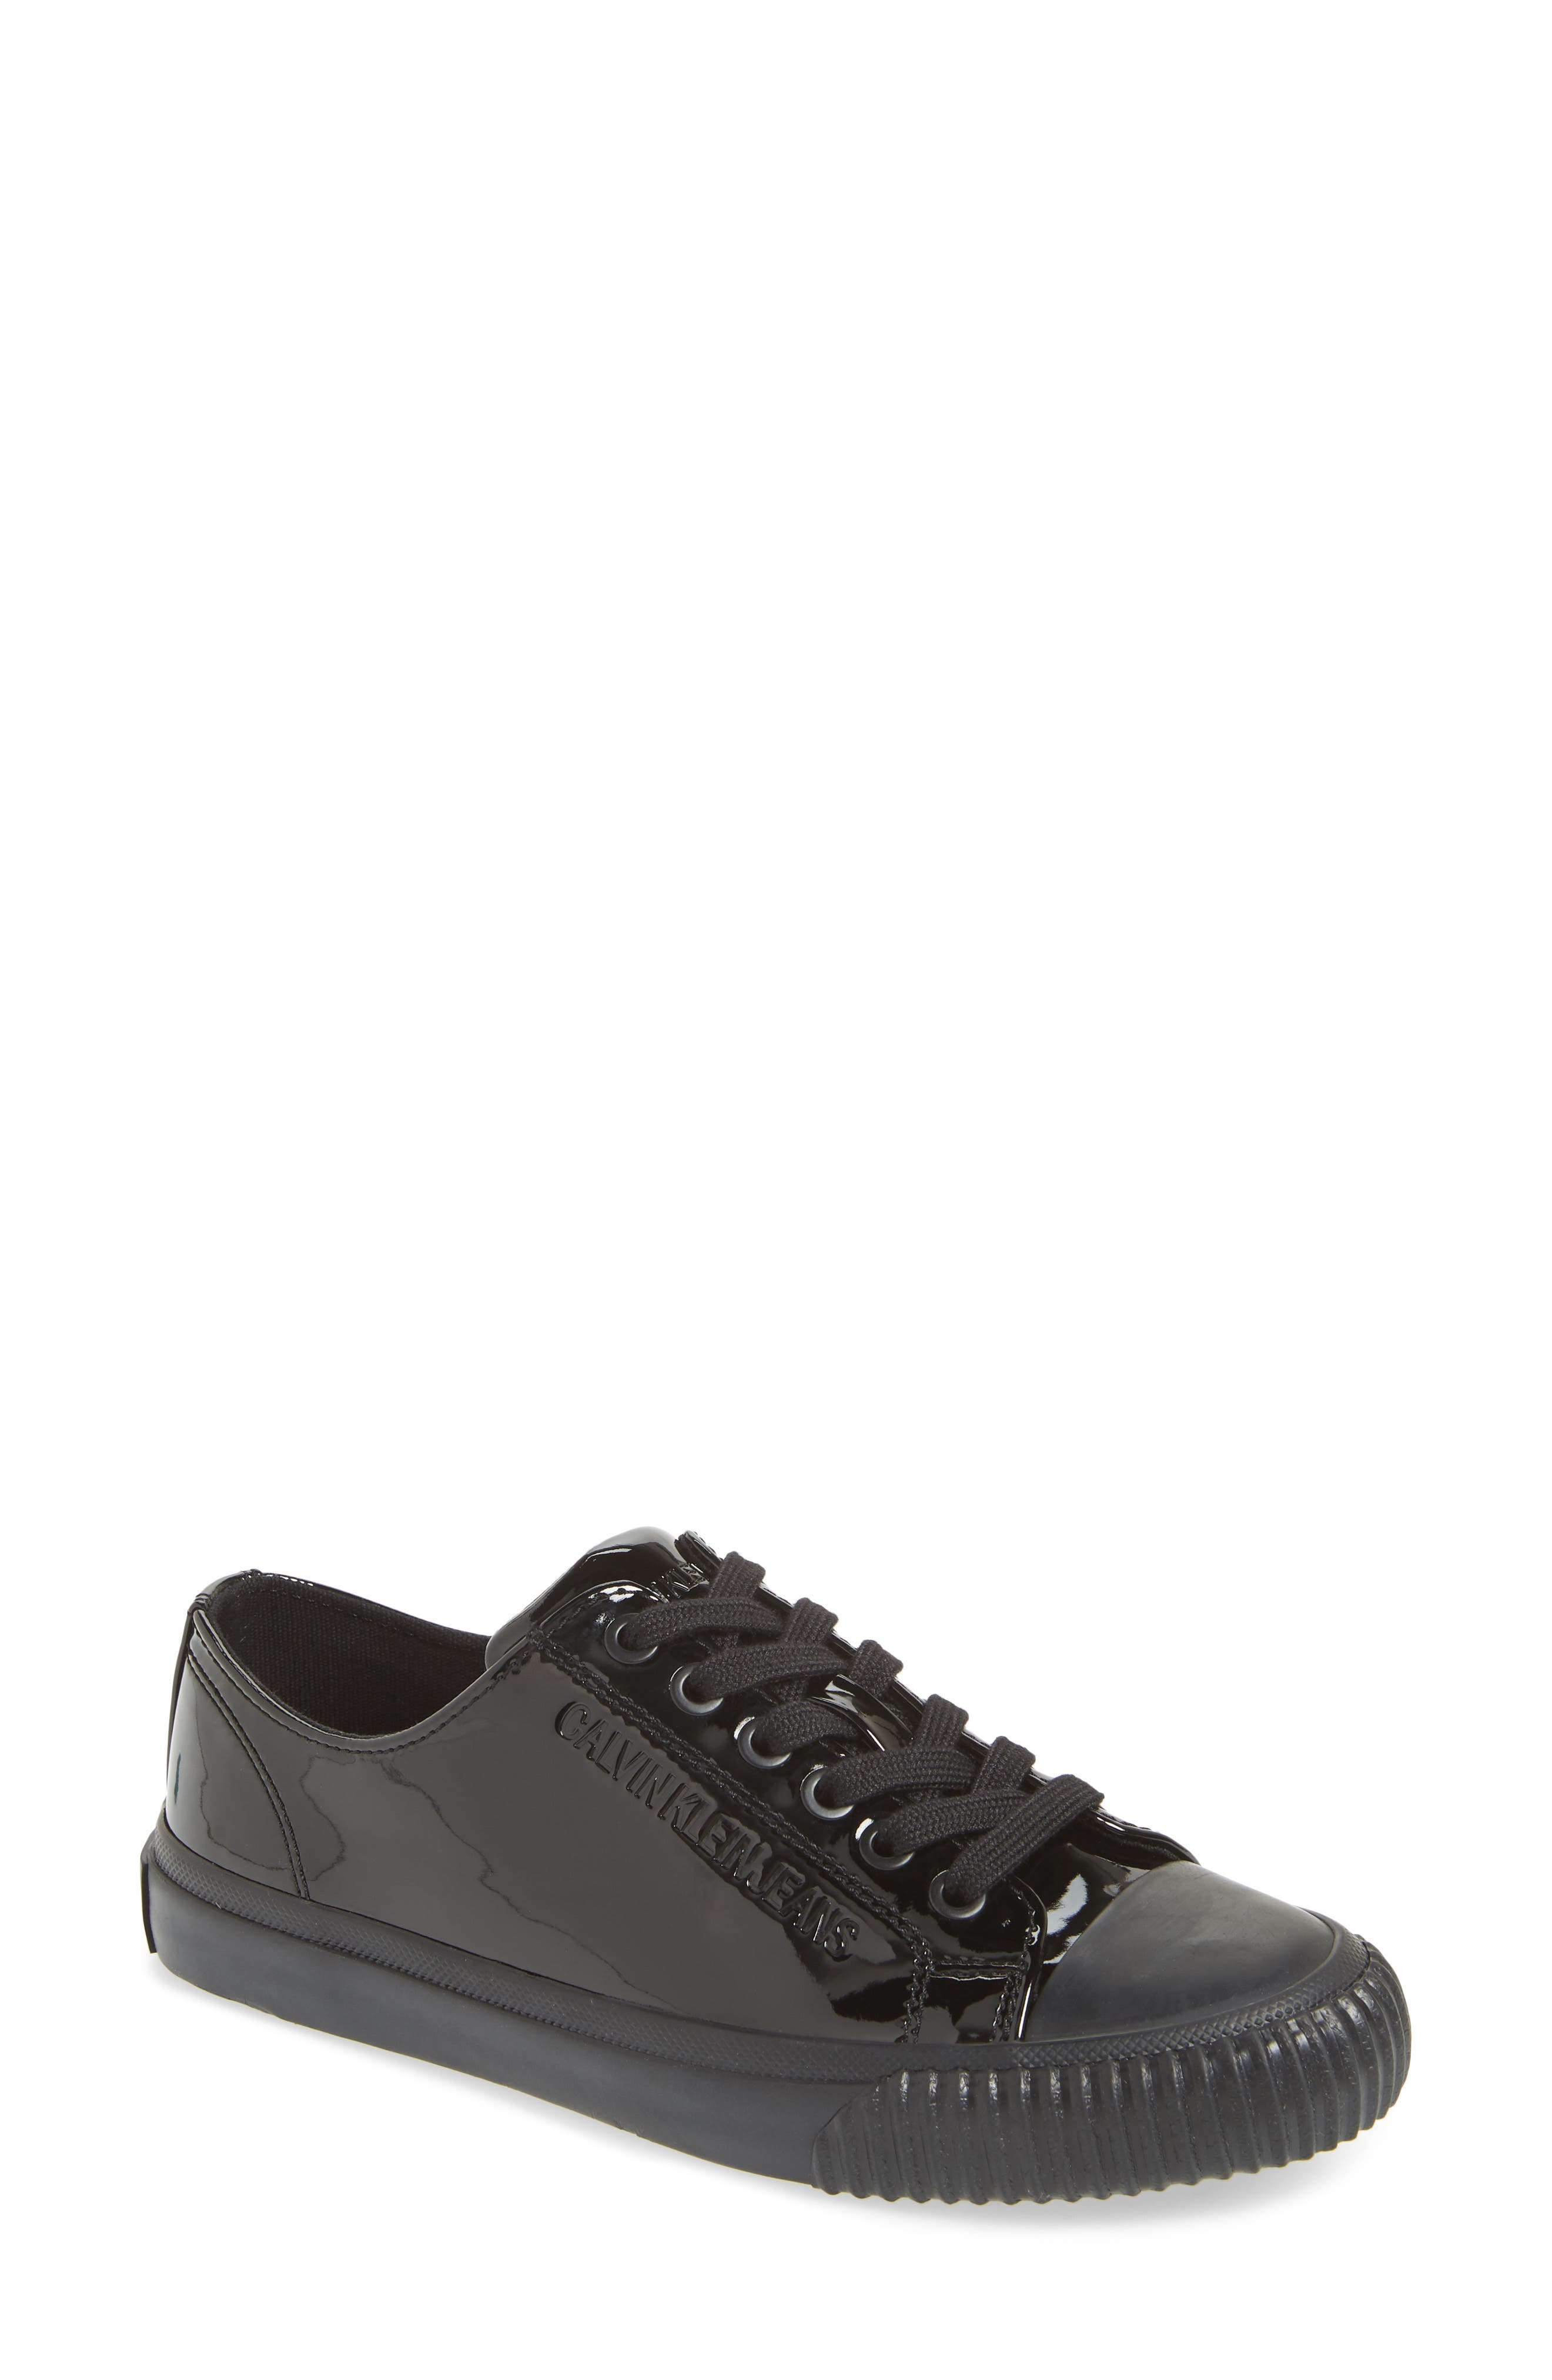 Ireland Lace-Up Sneaker,                         Main,                         color, BLACK